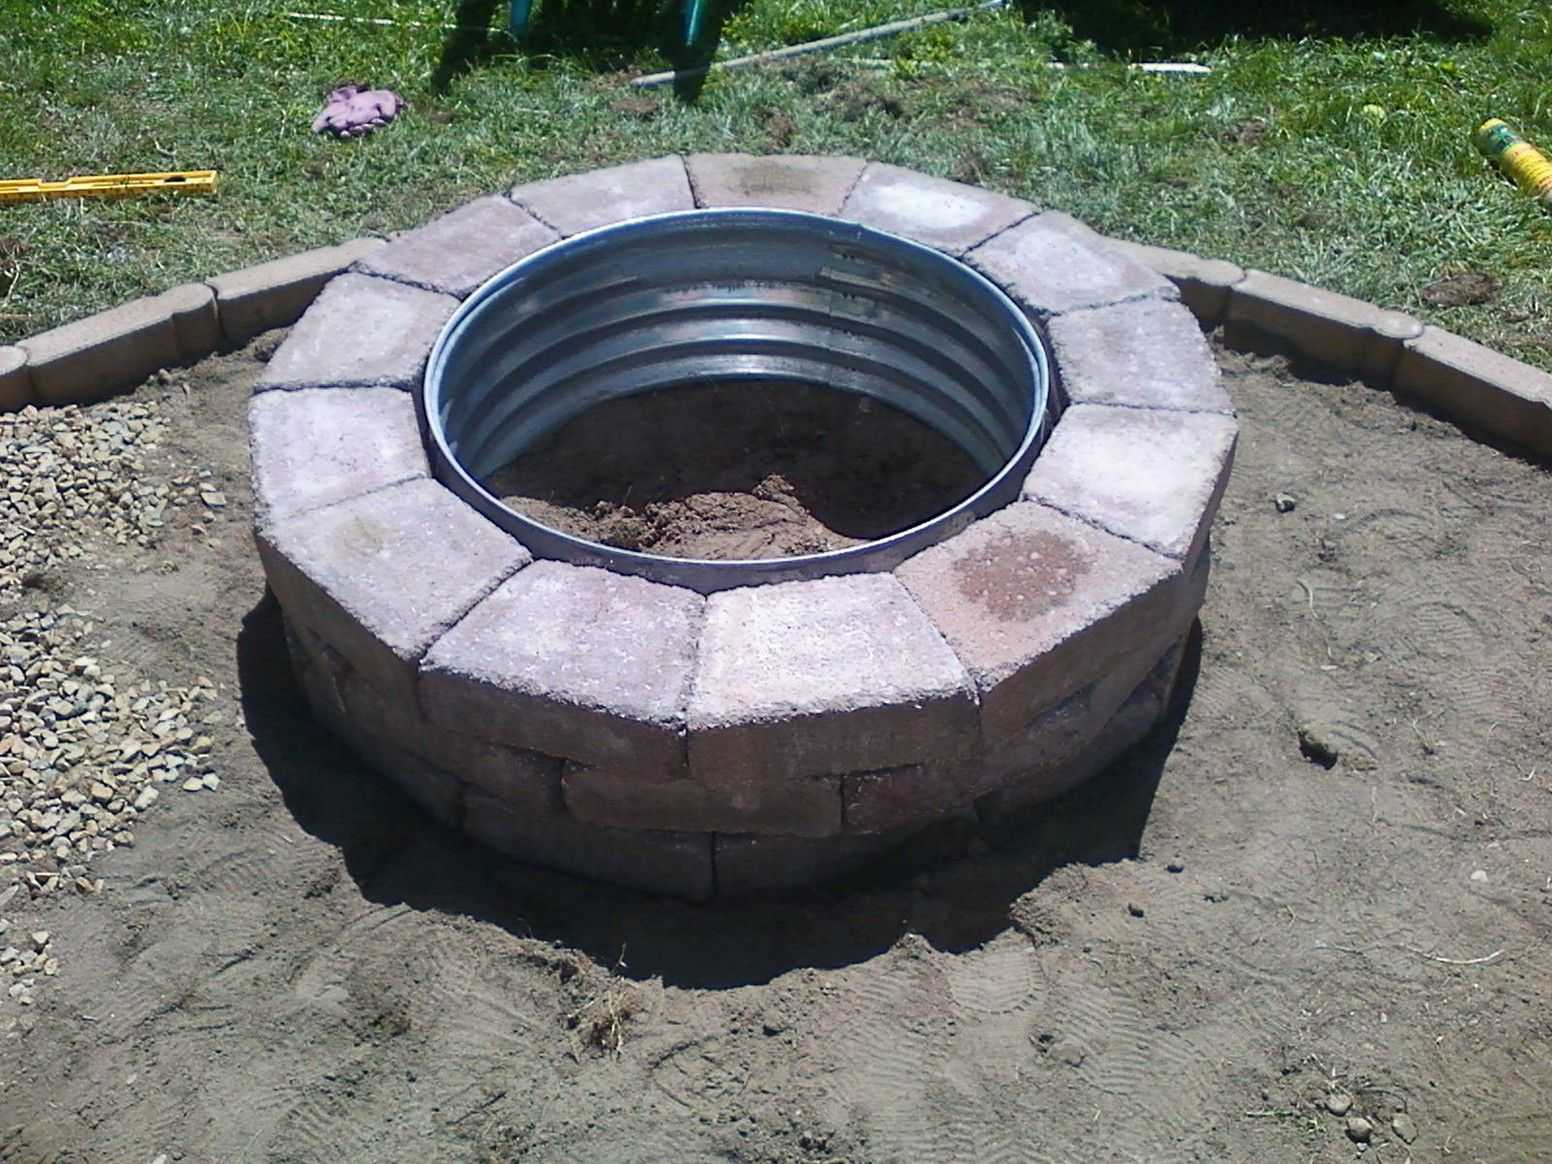 Fire Pit Ideas DIY Images. Build Your Own Stone Fire Pit Now [COOL]